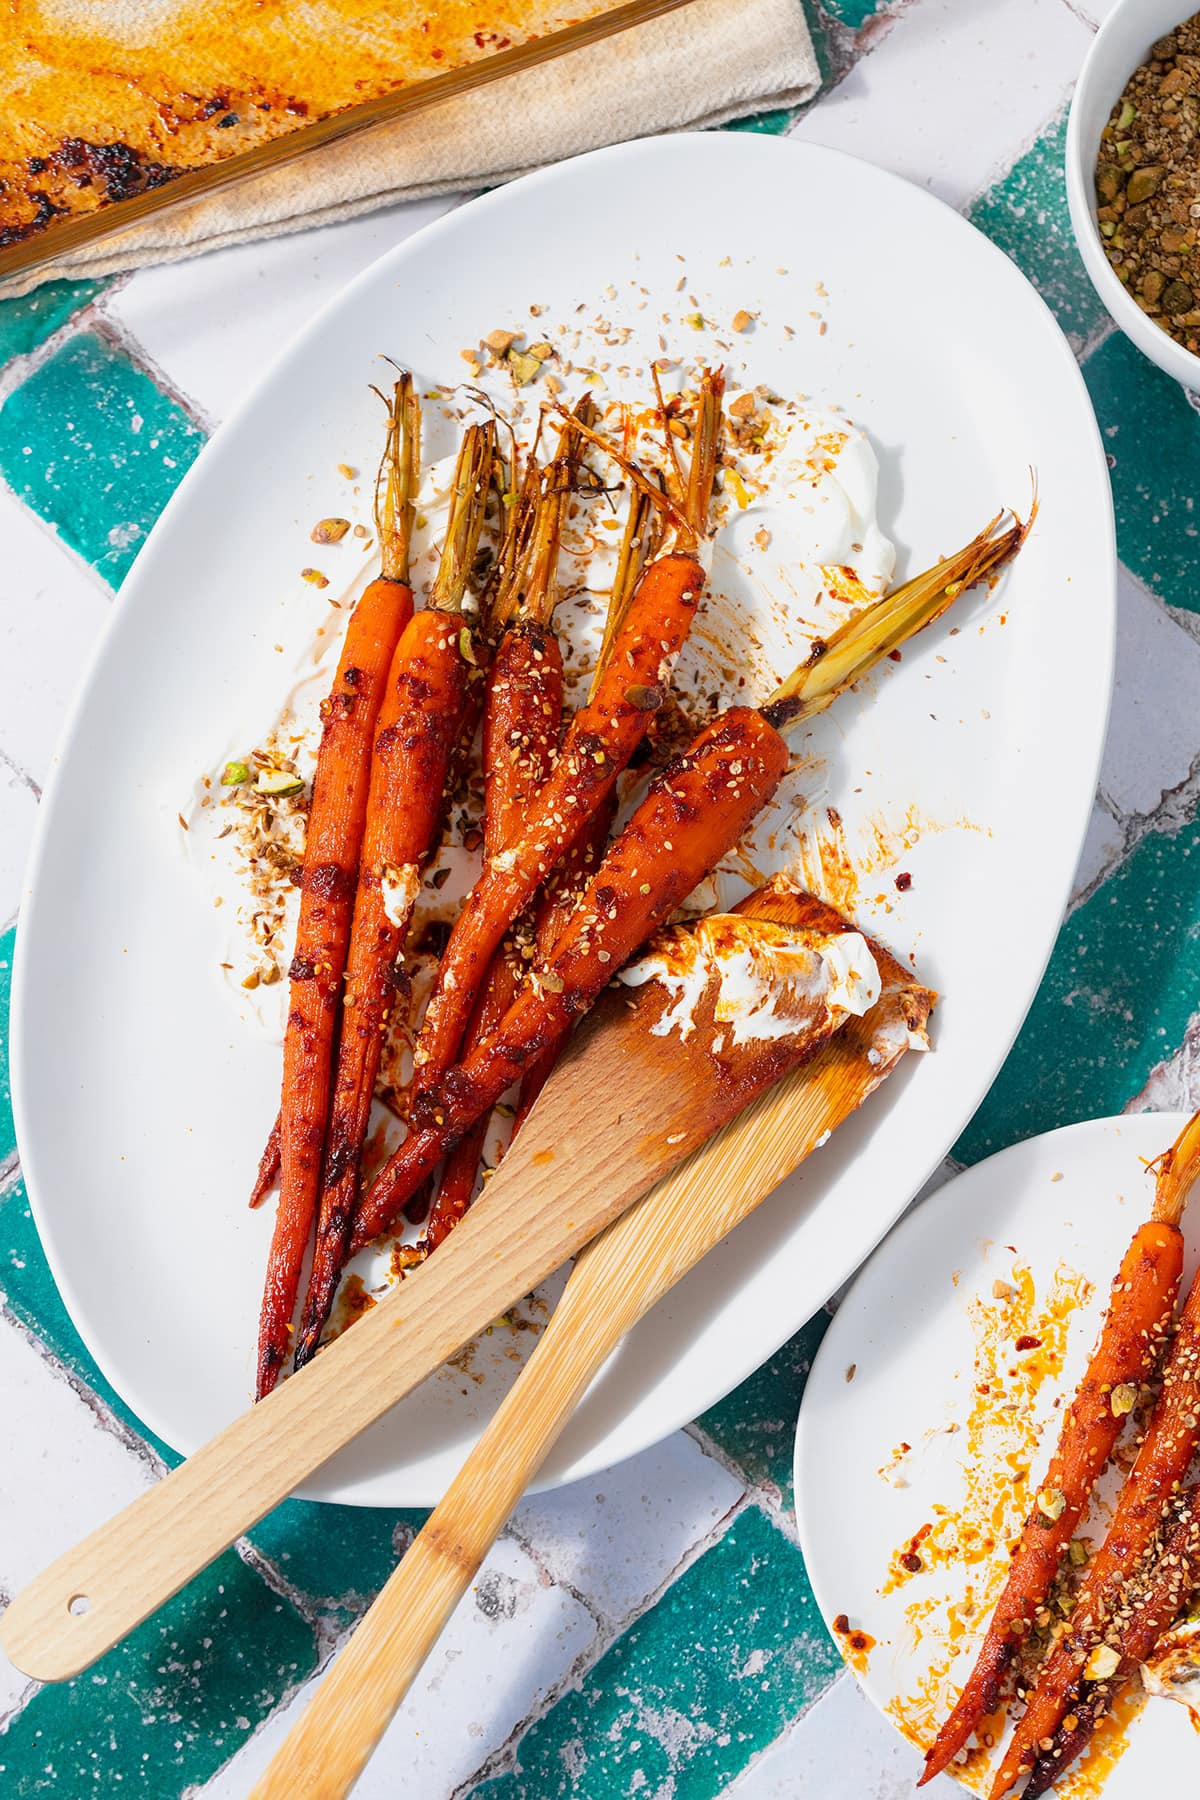 Harissa roasted carrots on a white serving platter with labneh spread under the carrots. Sprinkled with dukkah. Two wooden spoons messy with labneh and harissa leaning on the right edge of the platter. Plate on a white and turquoise tile table.